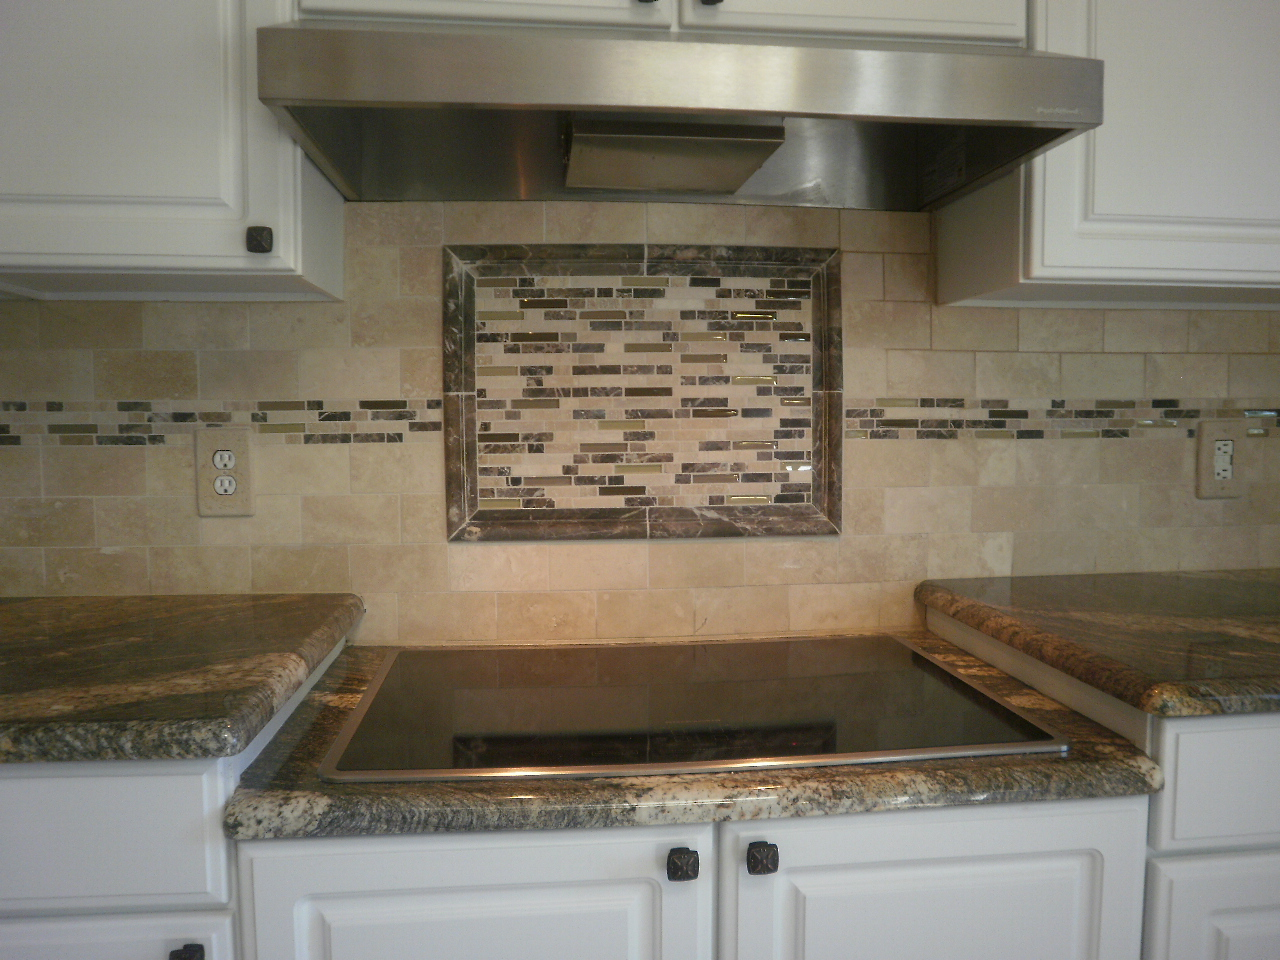 Kitchen backsplash ideas glass tile afreakatheart for Backsplash designs for small kitchen